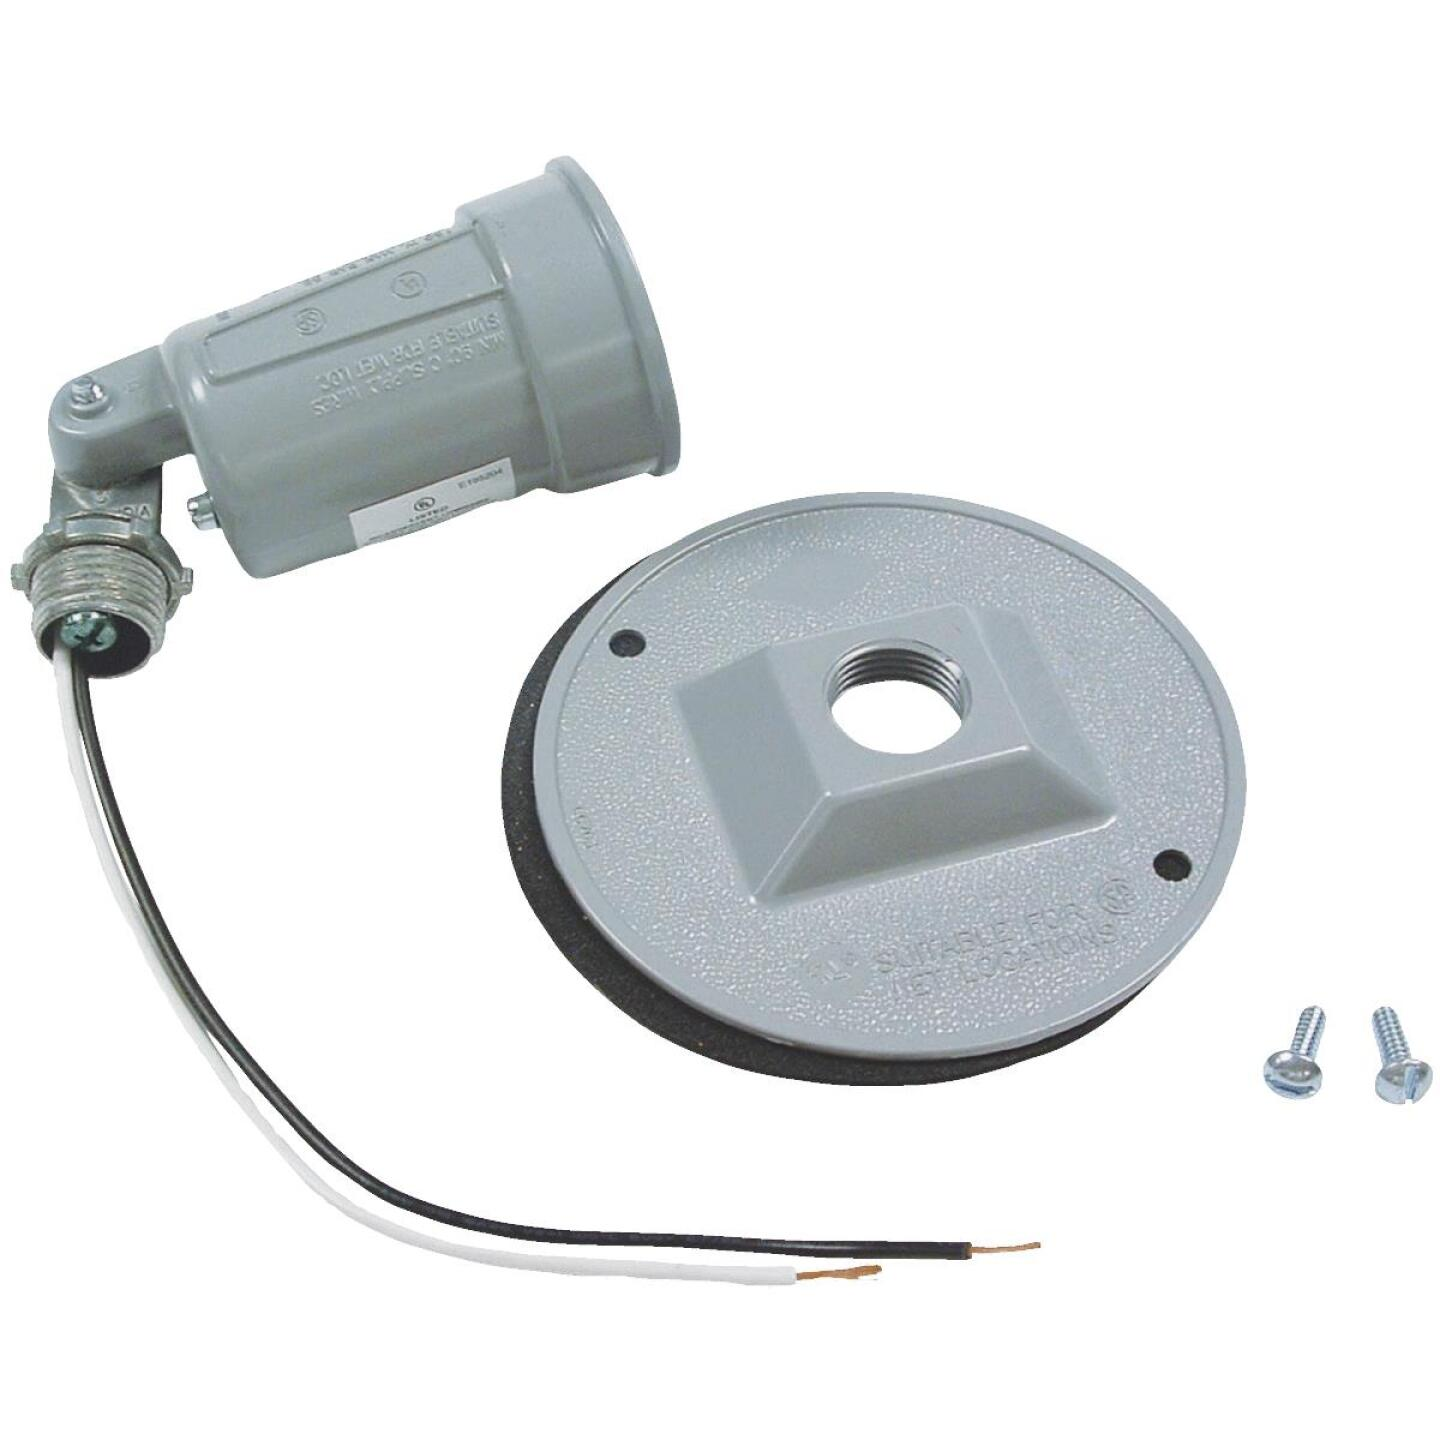 Bell 150W Aluminum Round Single Gray Weatherproof Outdoor Lampholder with Cover, Carded Image 1